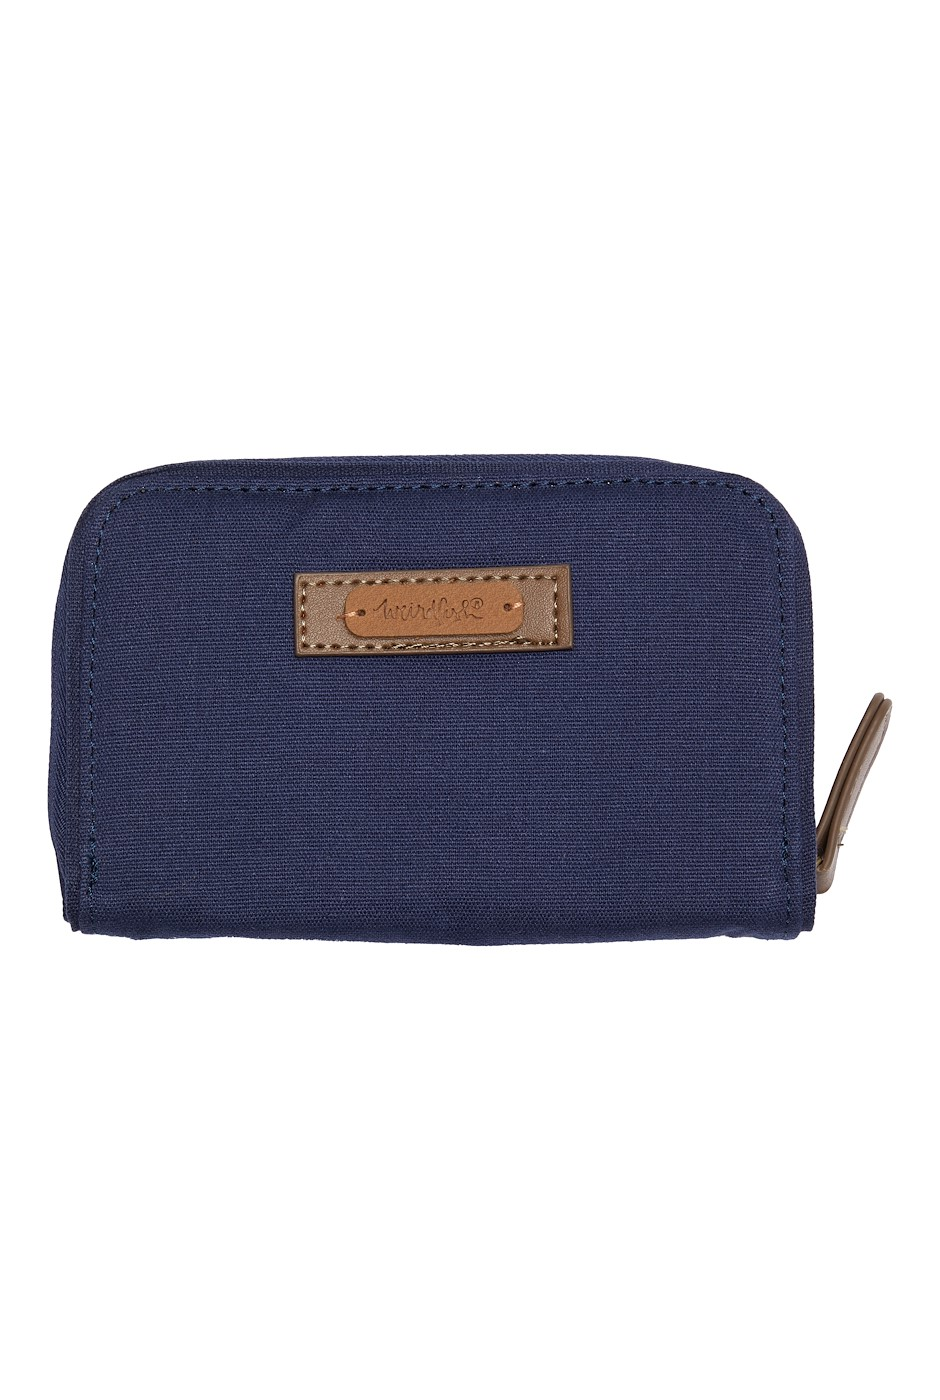 Canning Cotton Purse Navy